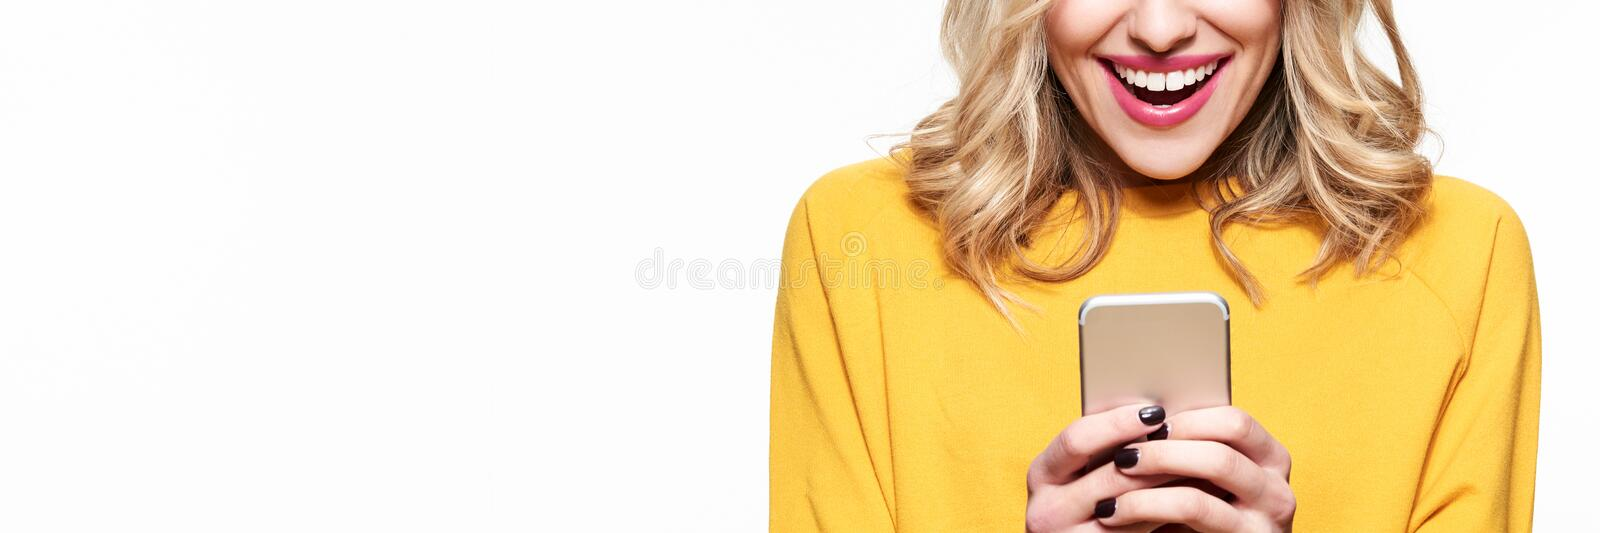 Excited young woman looking at her mobile phone smiling. Woman reading text message on her phone. royalty free stock photography